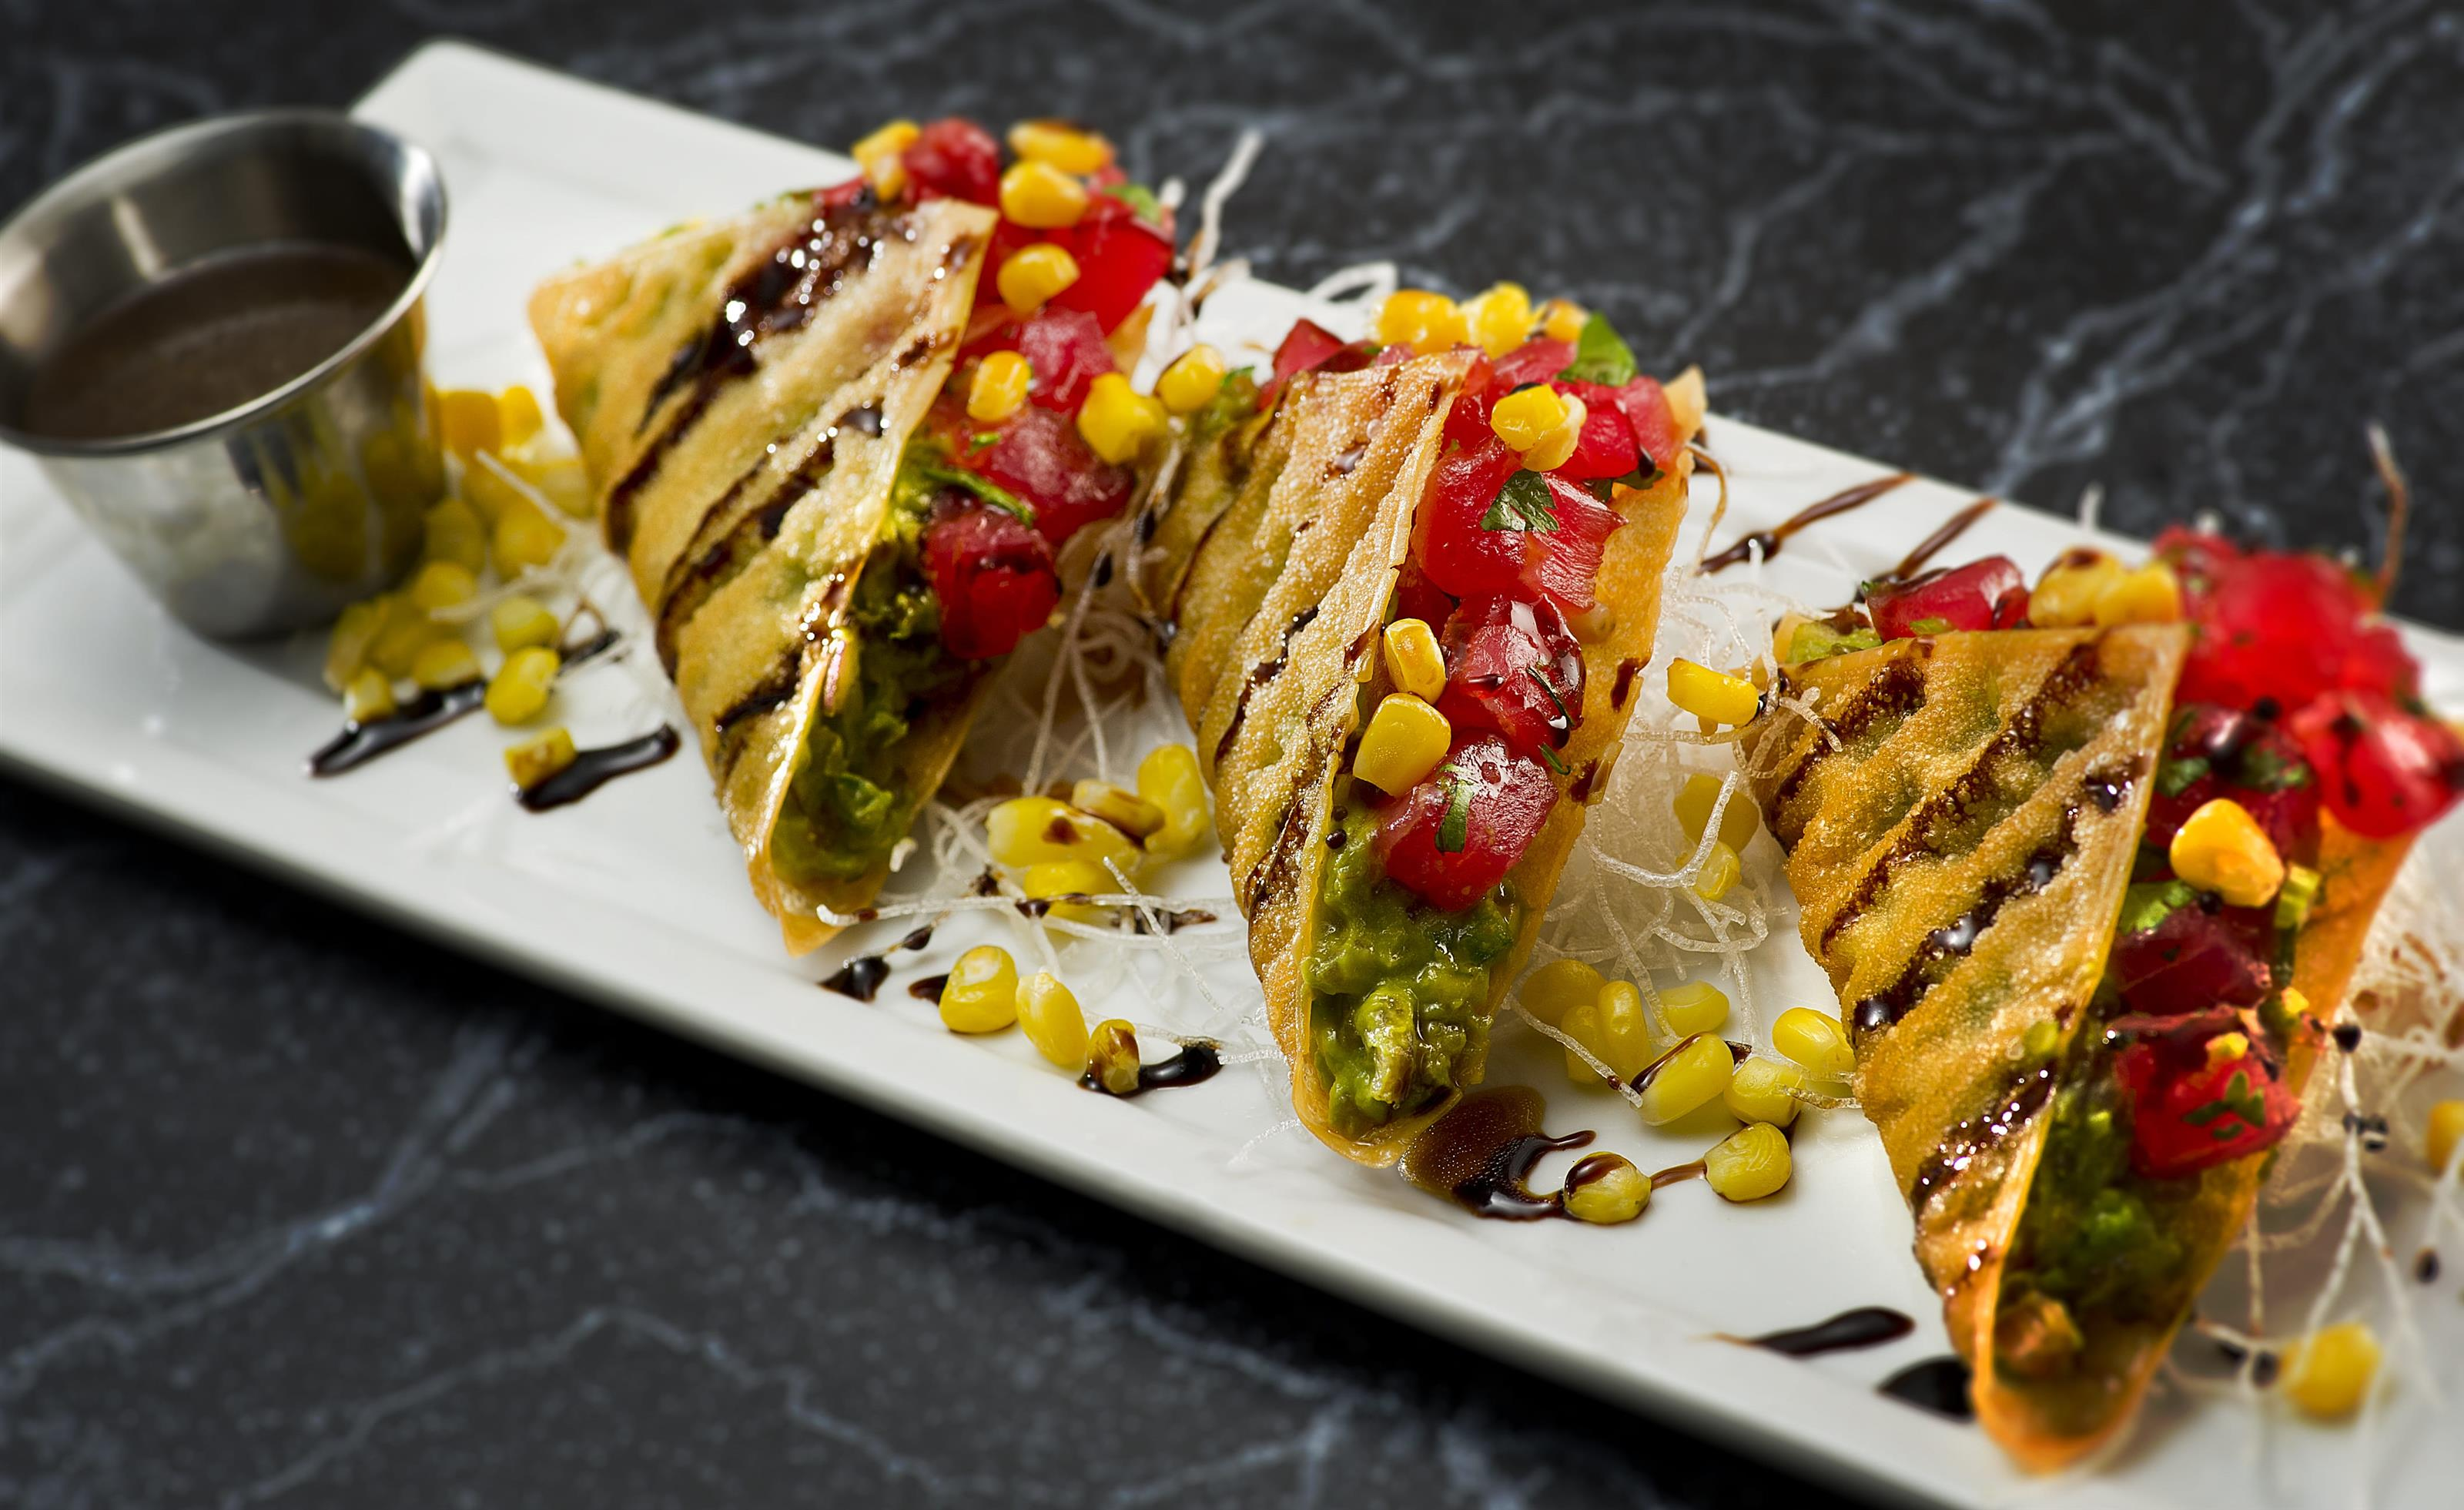 sushi tacos with avocado, tuna, corn, cilantro and a brown sauce in a crispy tortilla served with more sauce on the side